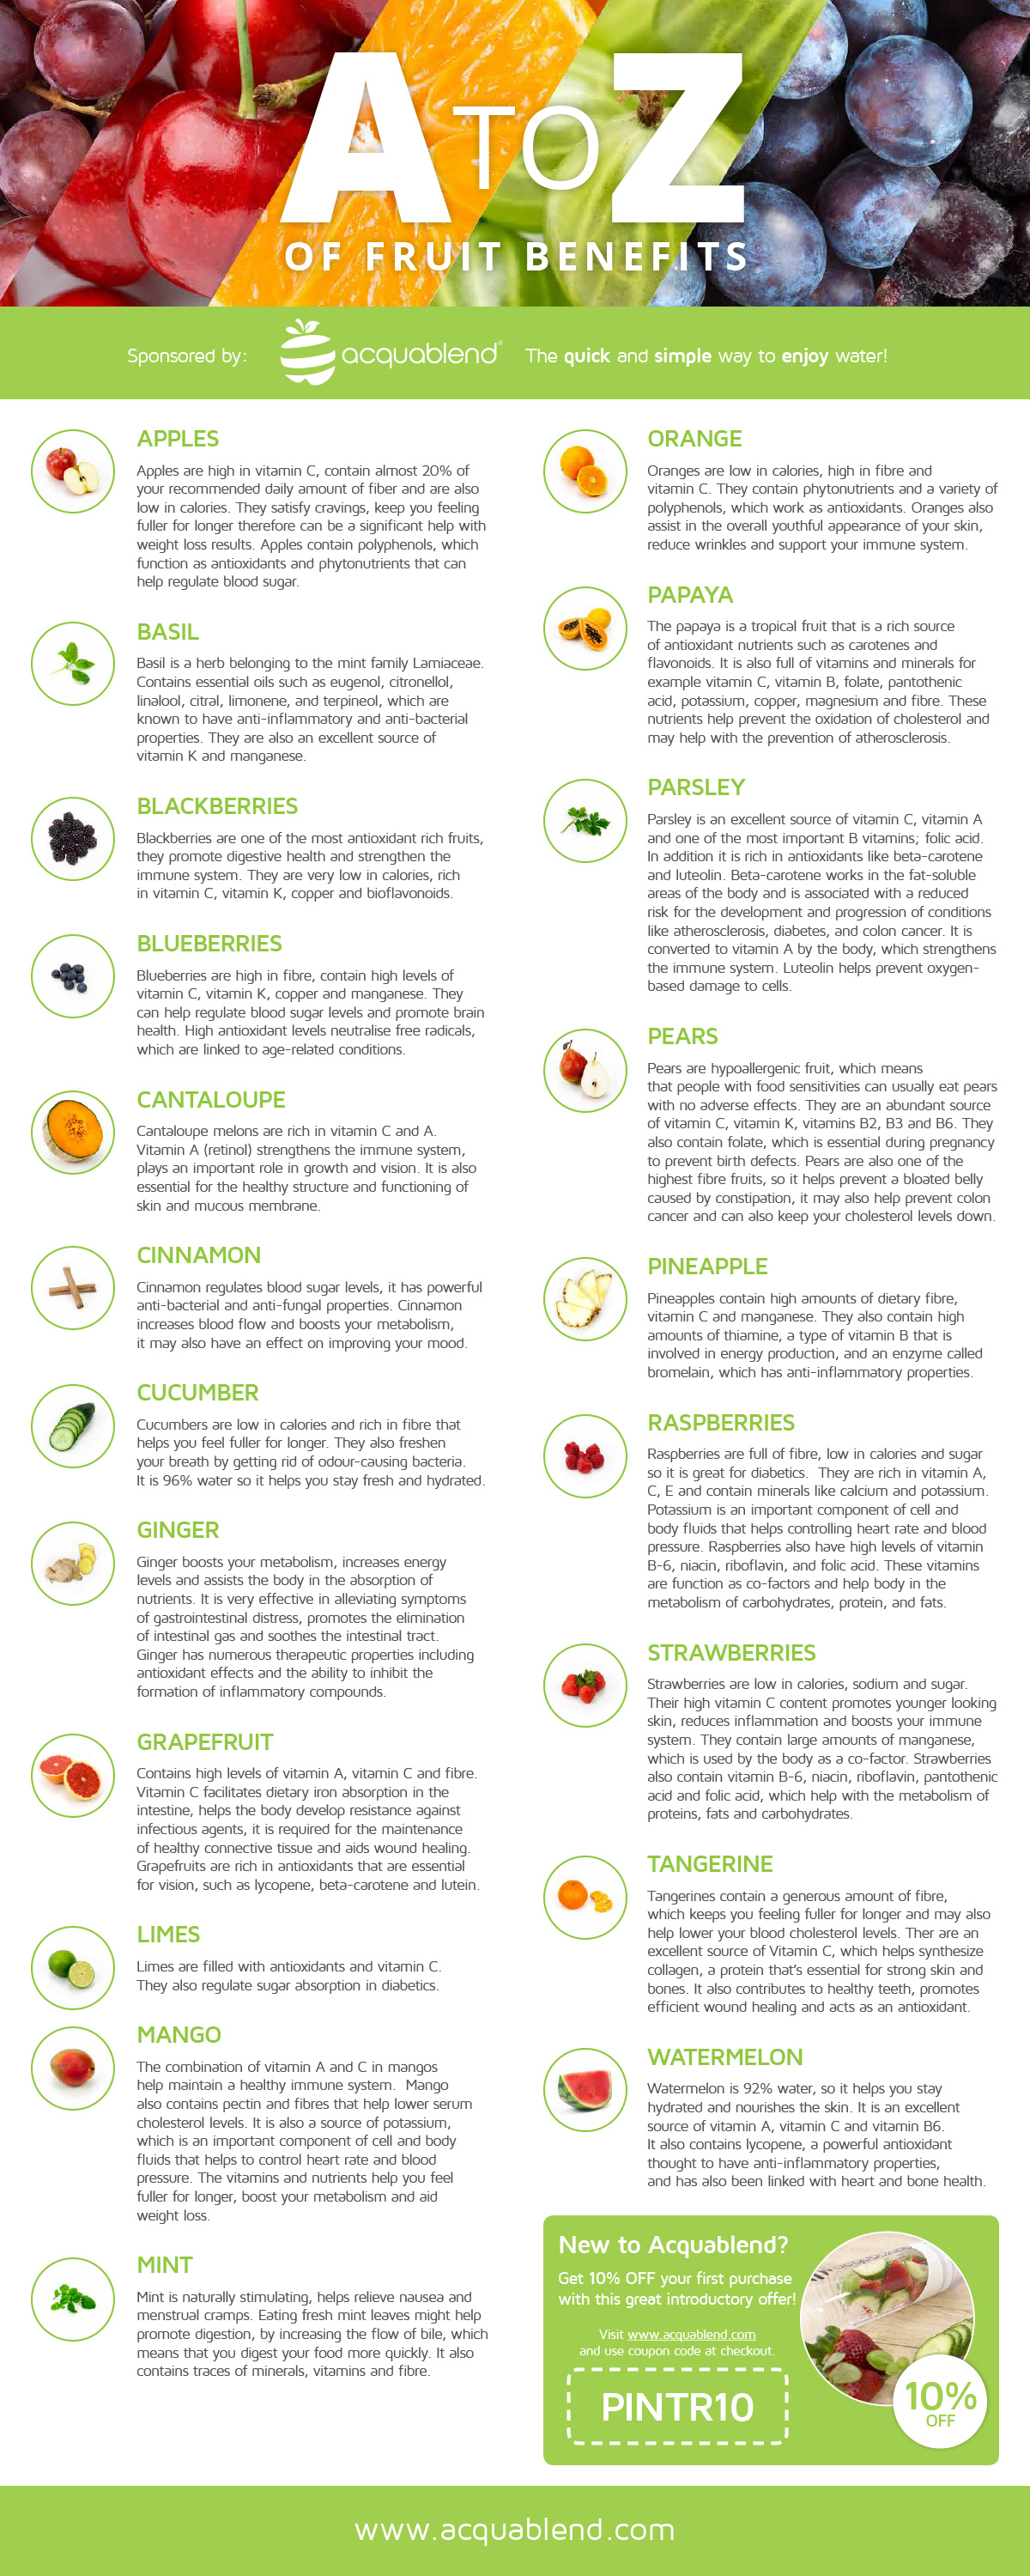 A to Z list of fruit benefits.